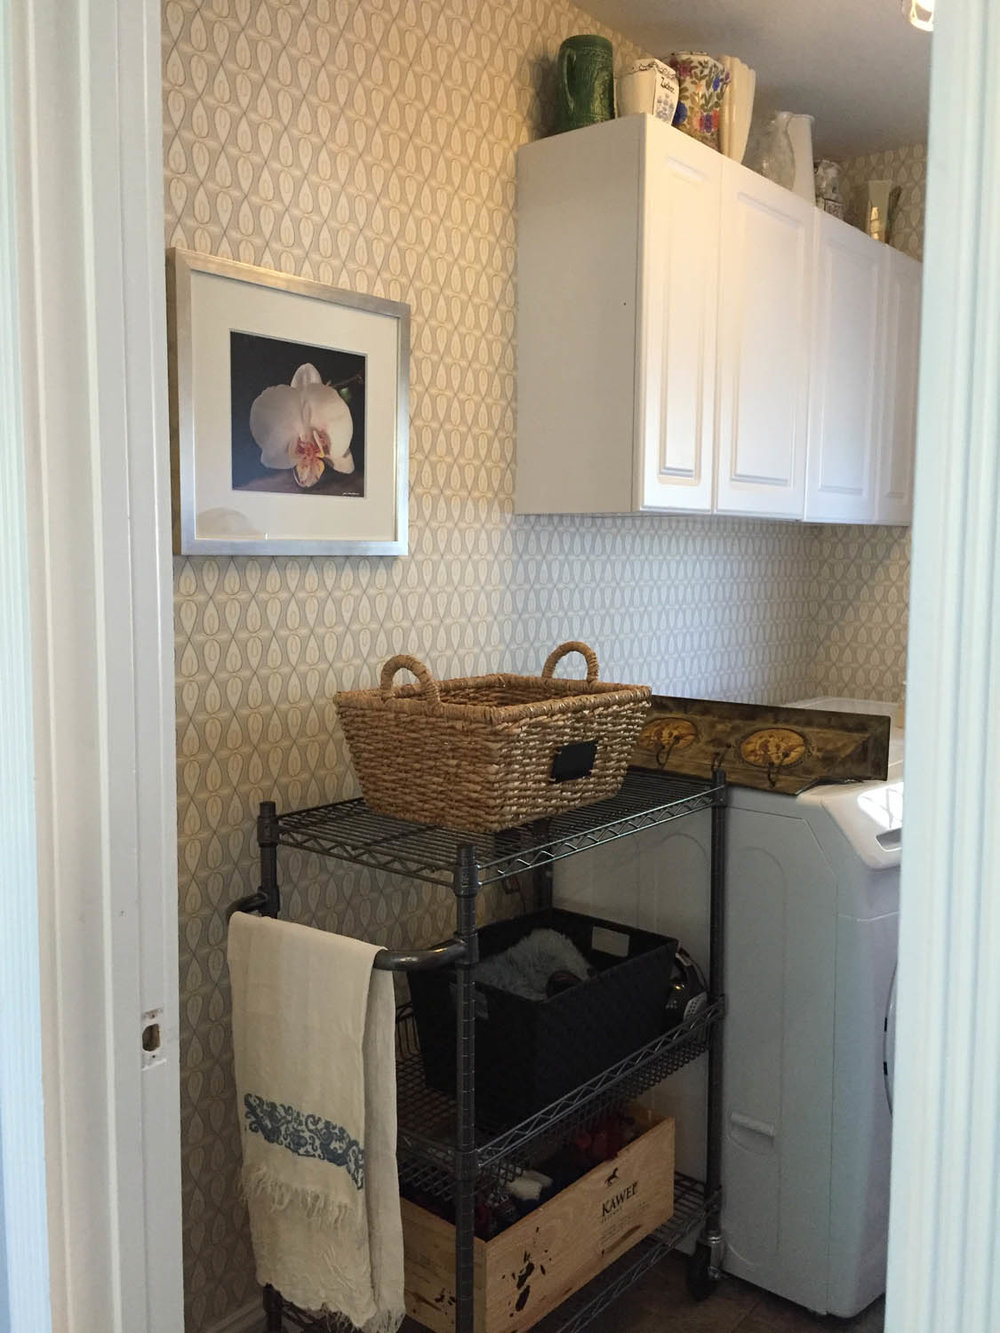 Remodeled laundry room with wallpaper